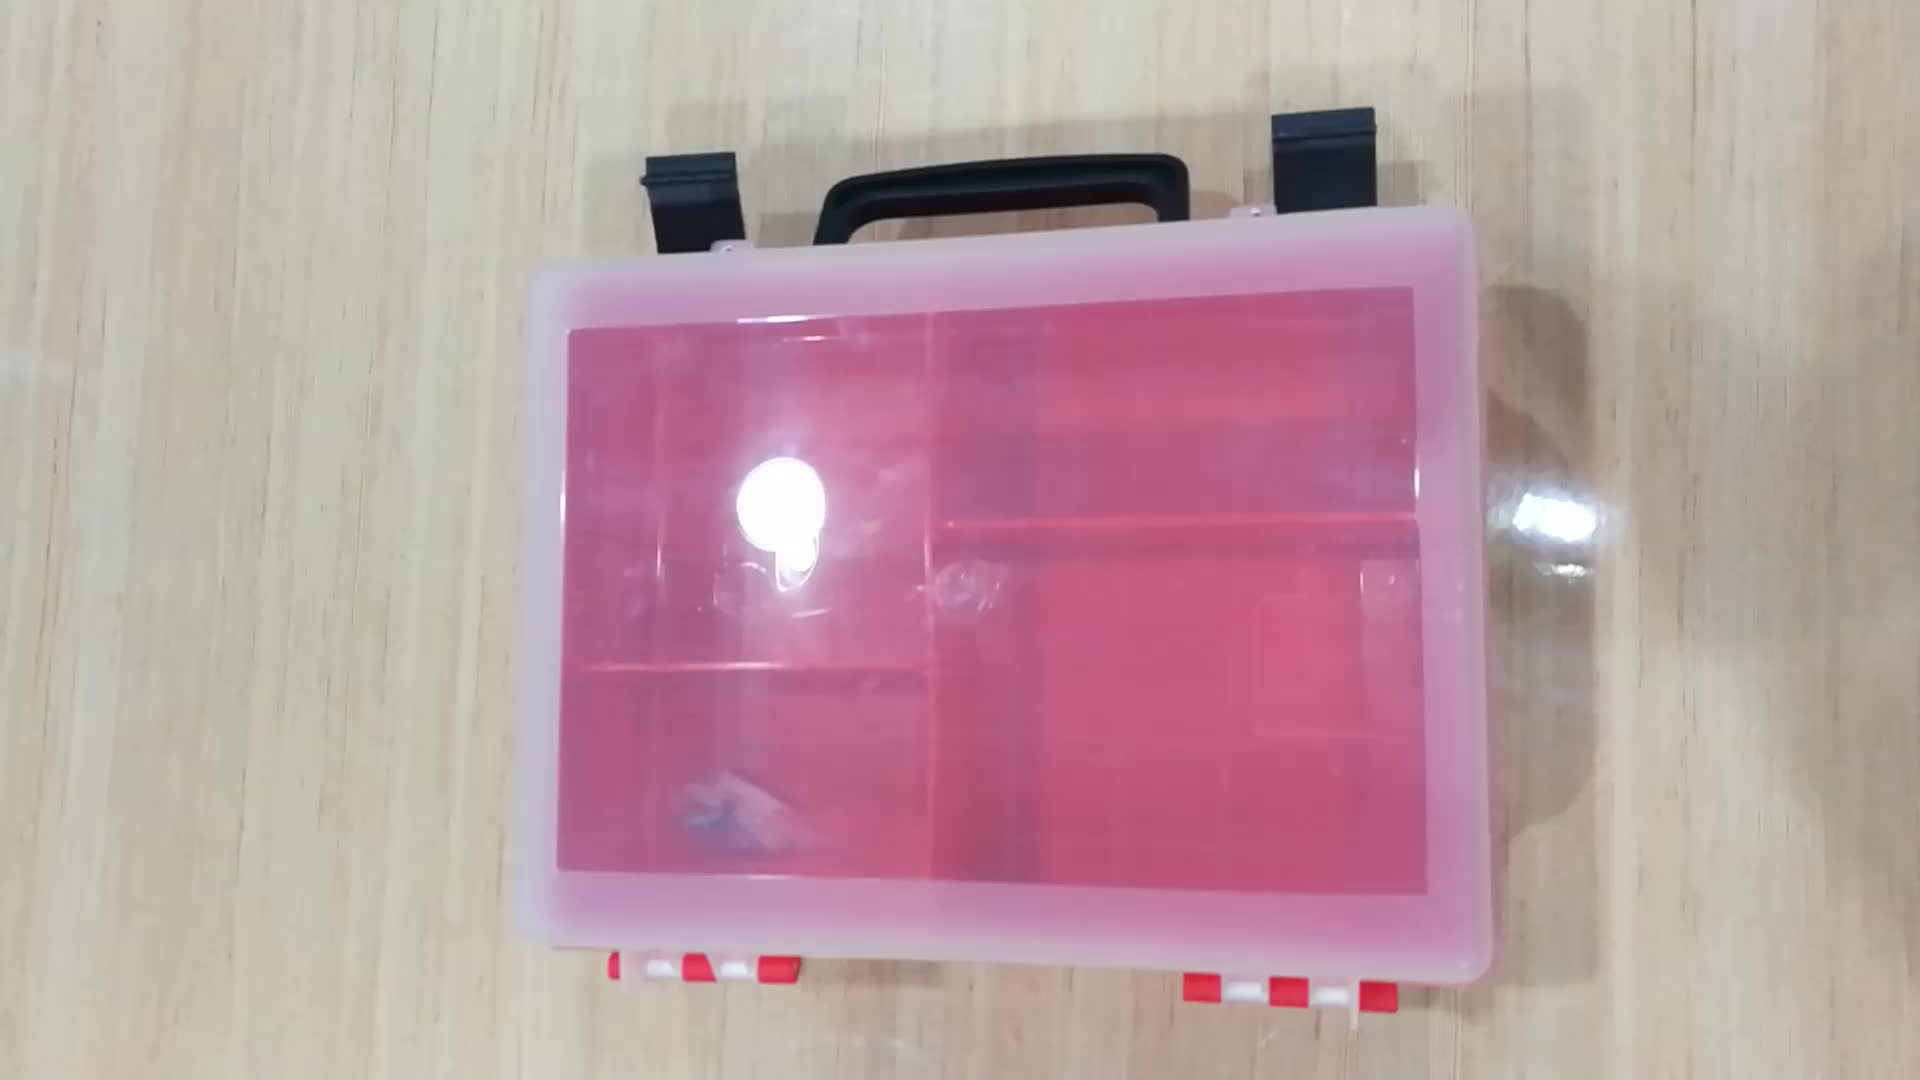 GAUKE BSCI FDA ISO CE Hot Sale Custom Wholesale Medical Bags Empty PP Plastic Box For Car/Home/Traveling  GKB800